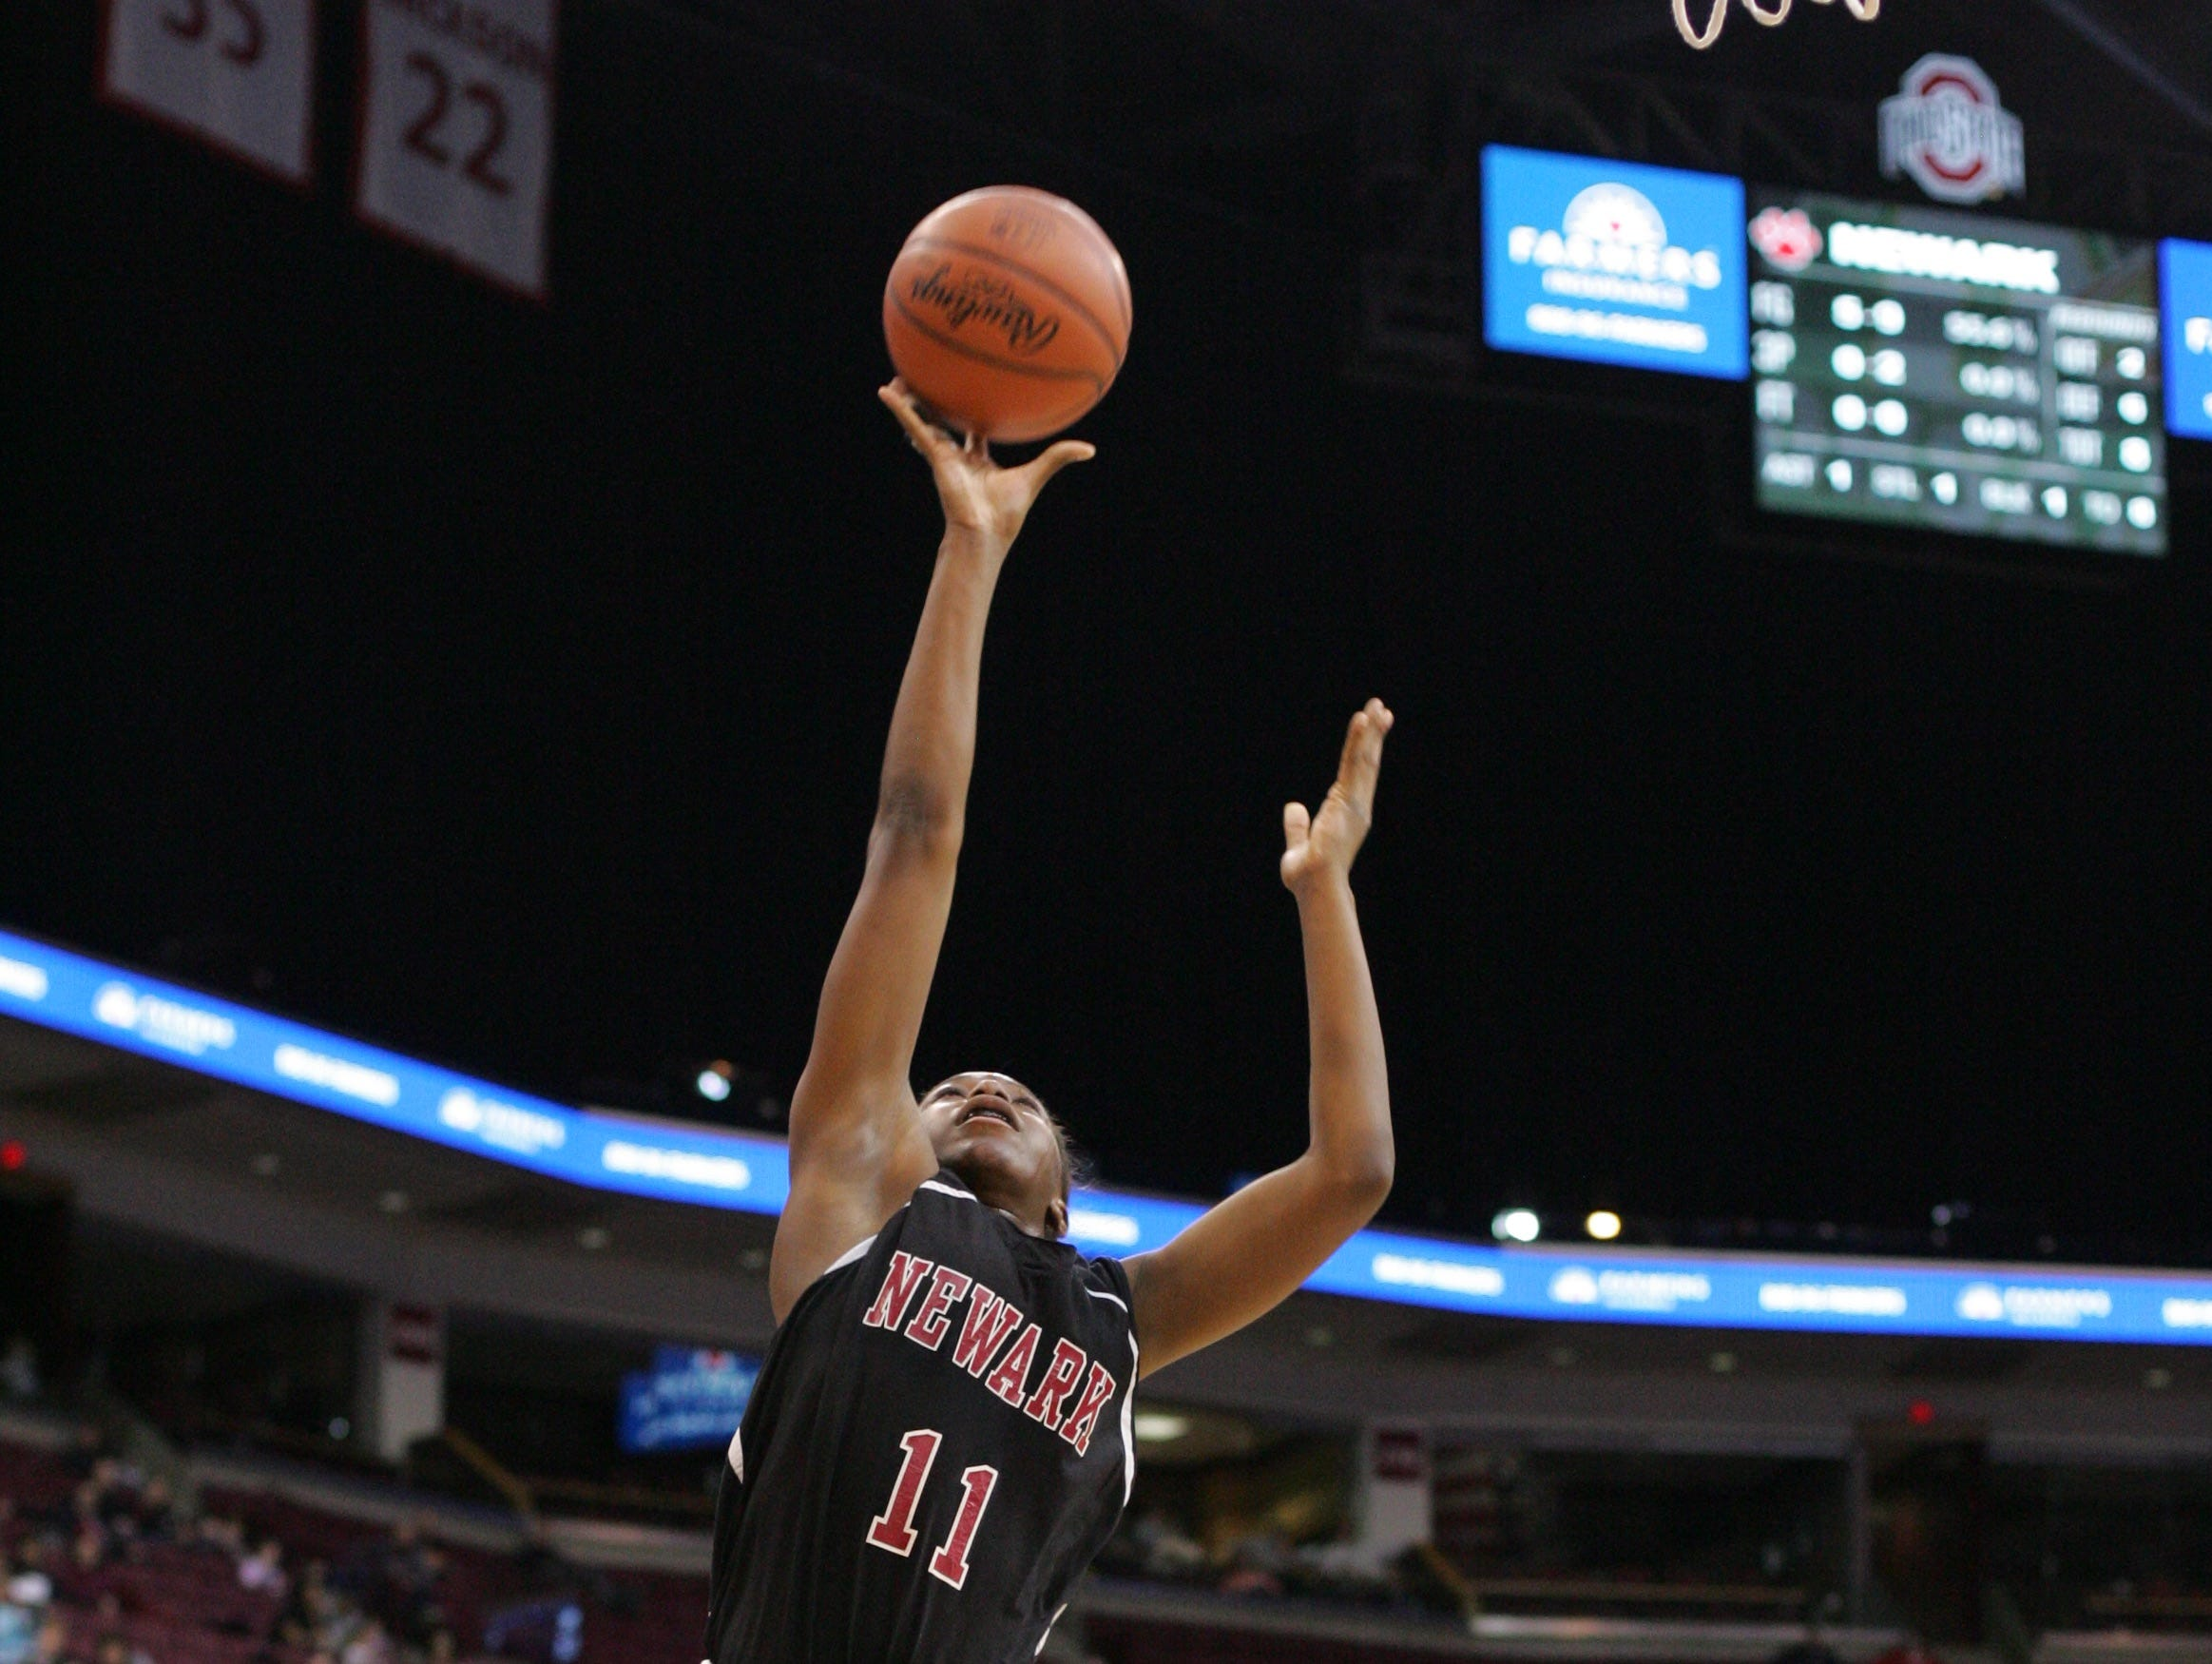 Newark senior Kym Royster drives to the net during the Division I state semifinal loss to Lakota West 53-50.